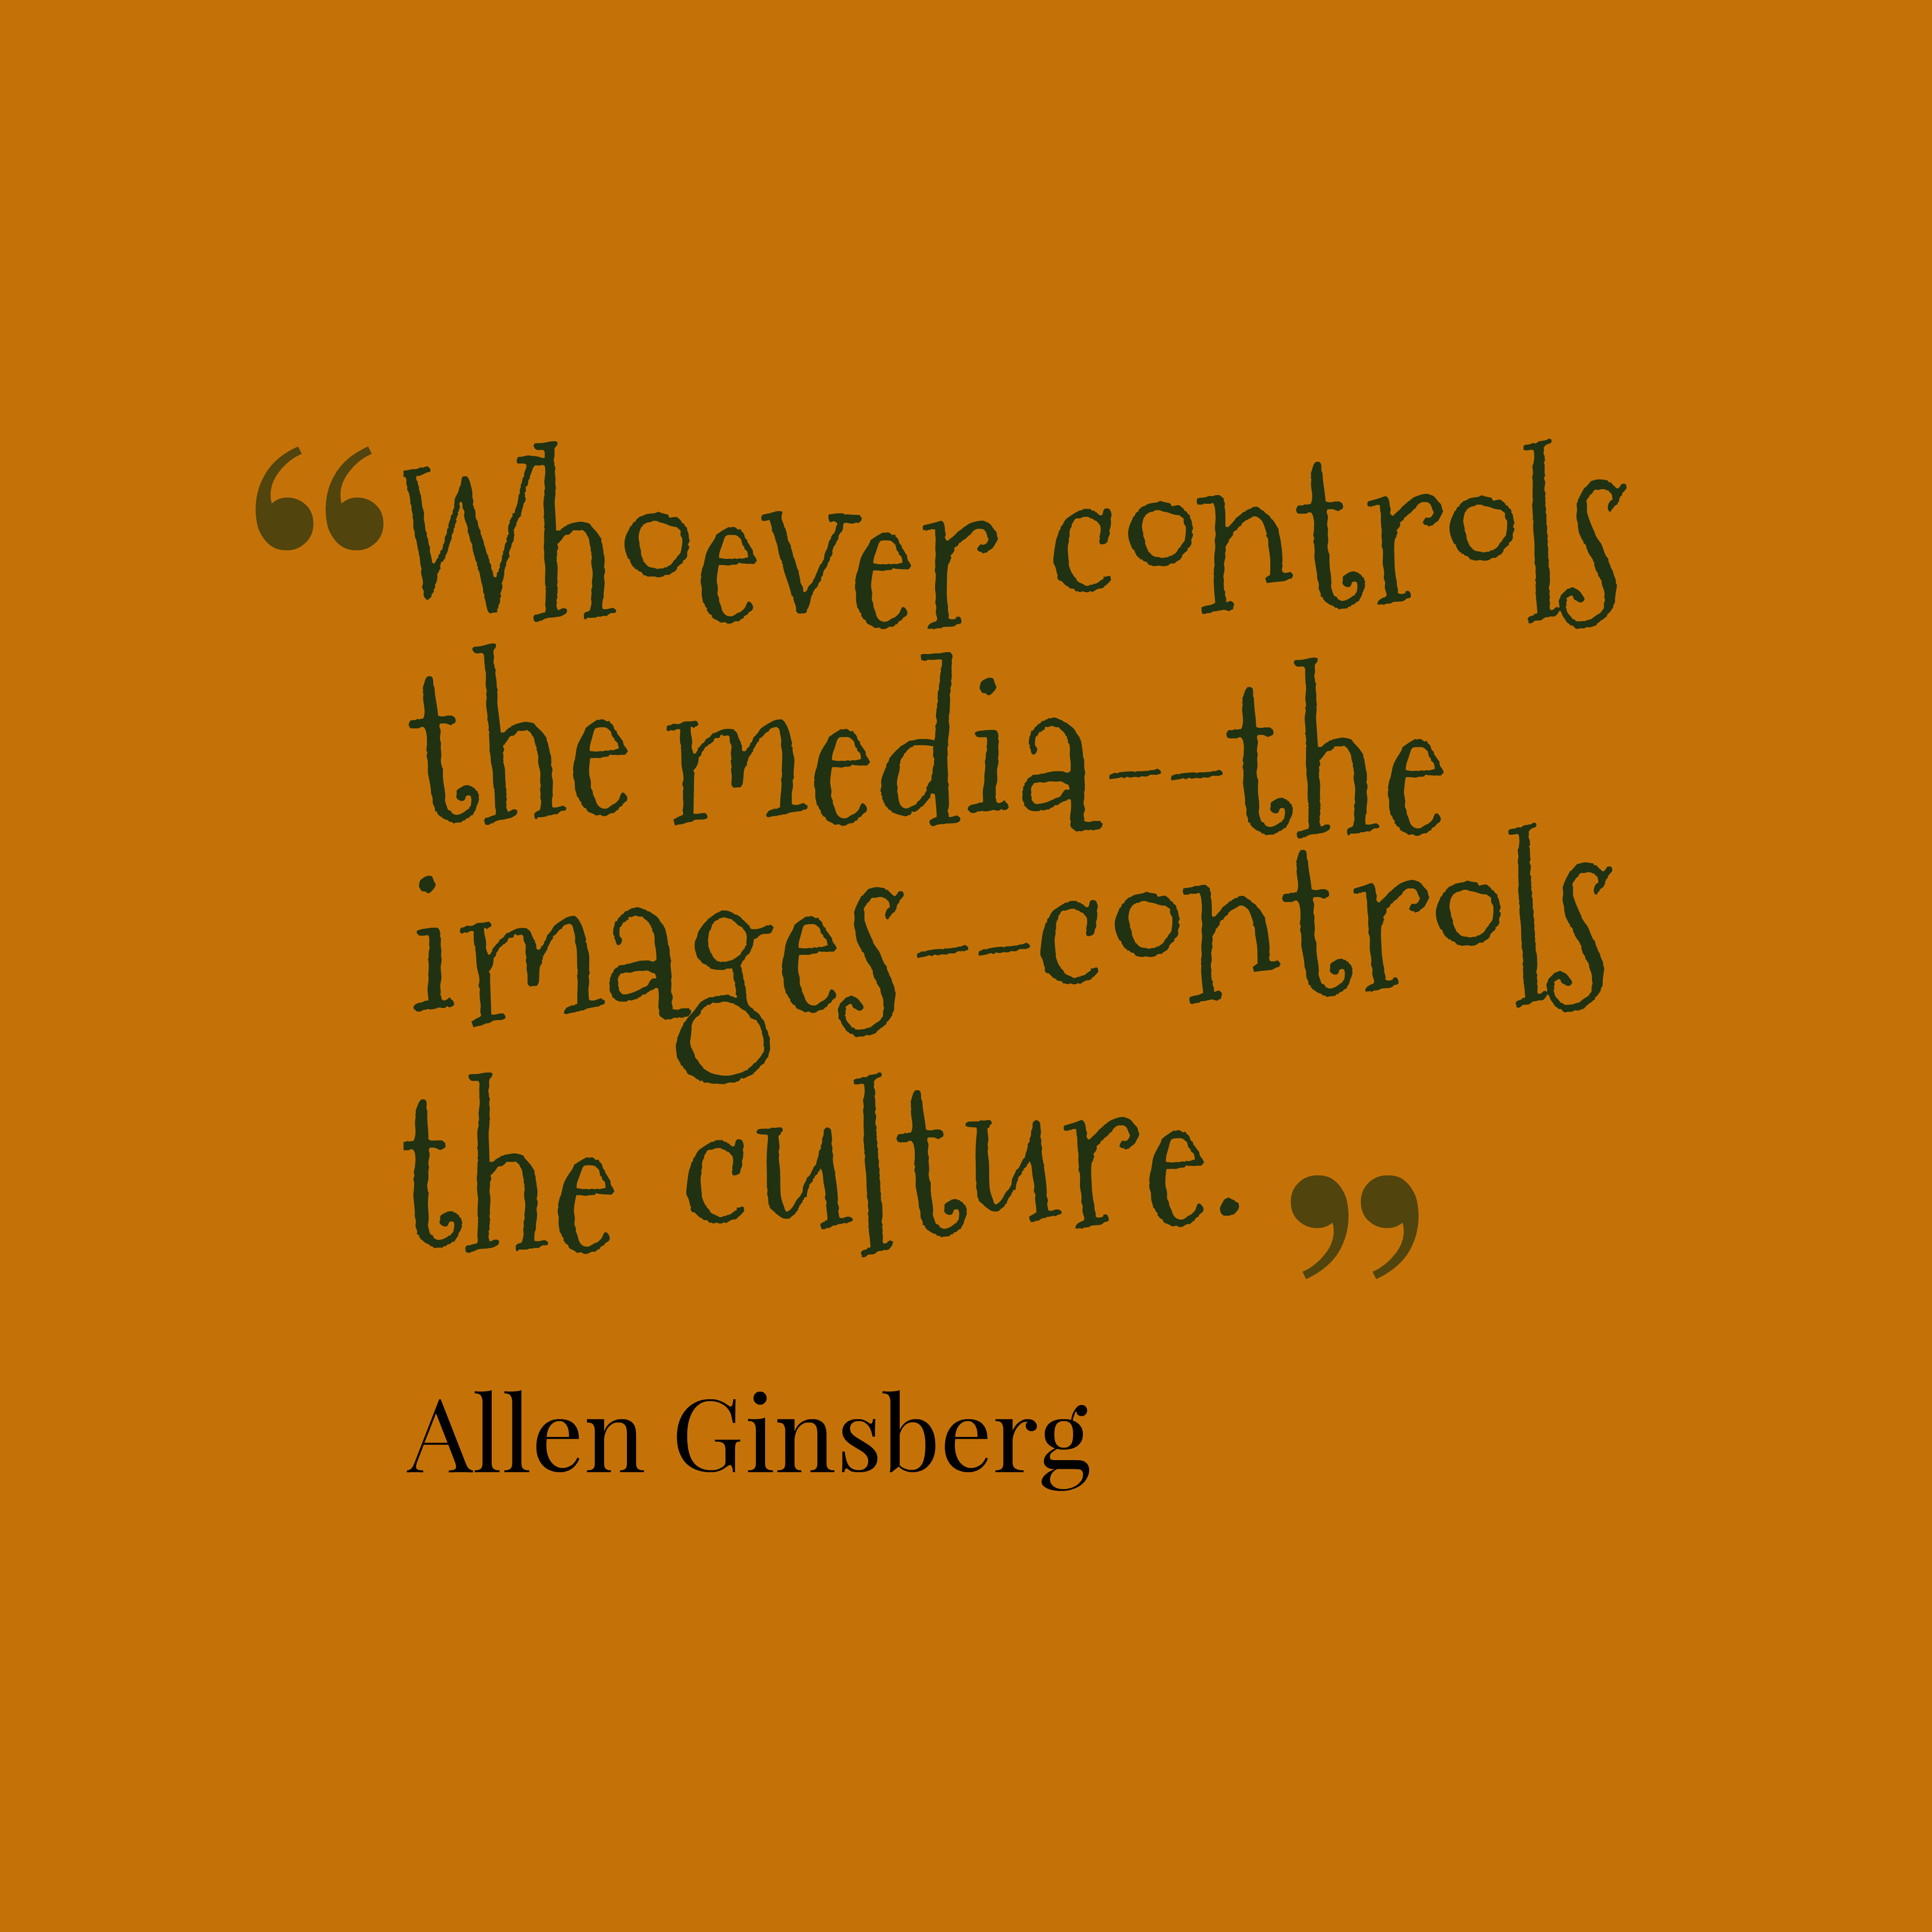 hi-res image of Whoever controls the media--the images--controls the ...